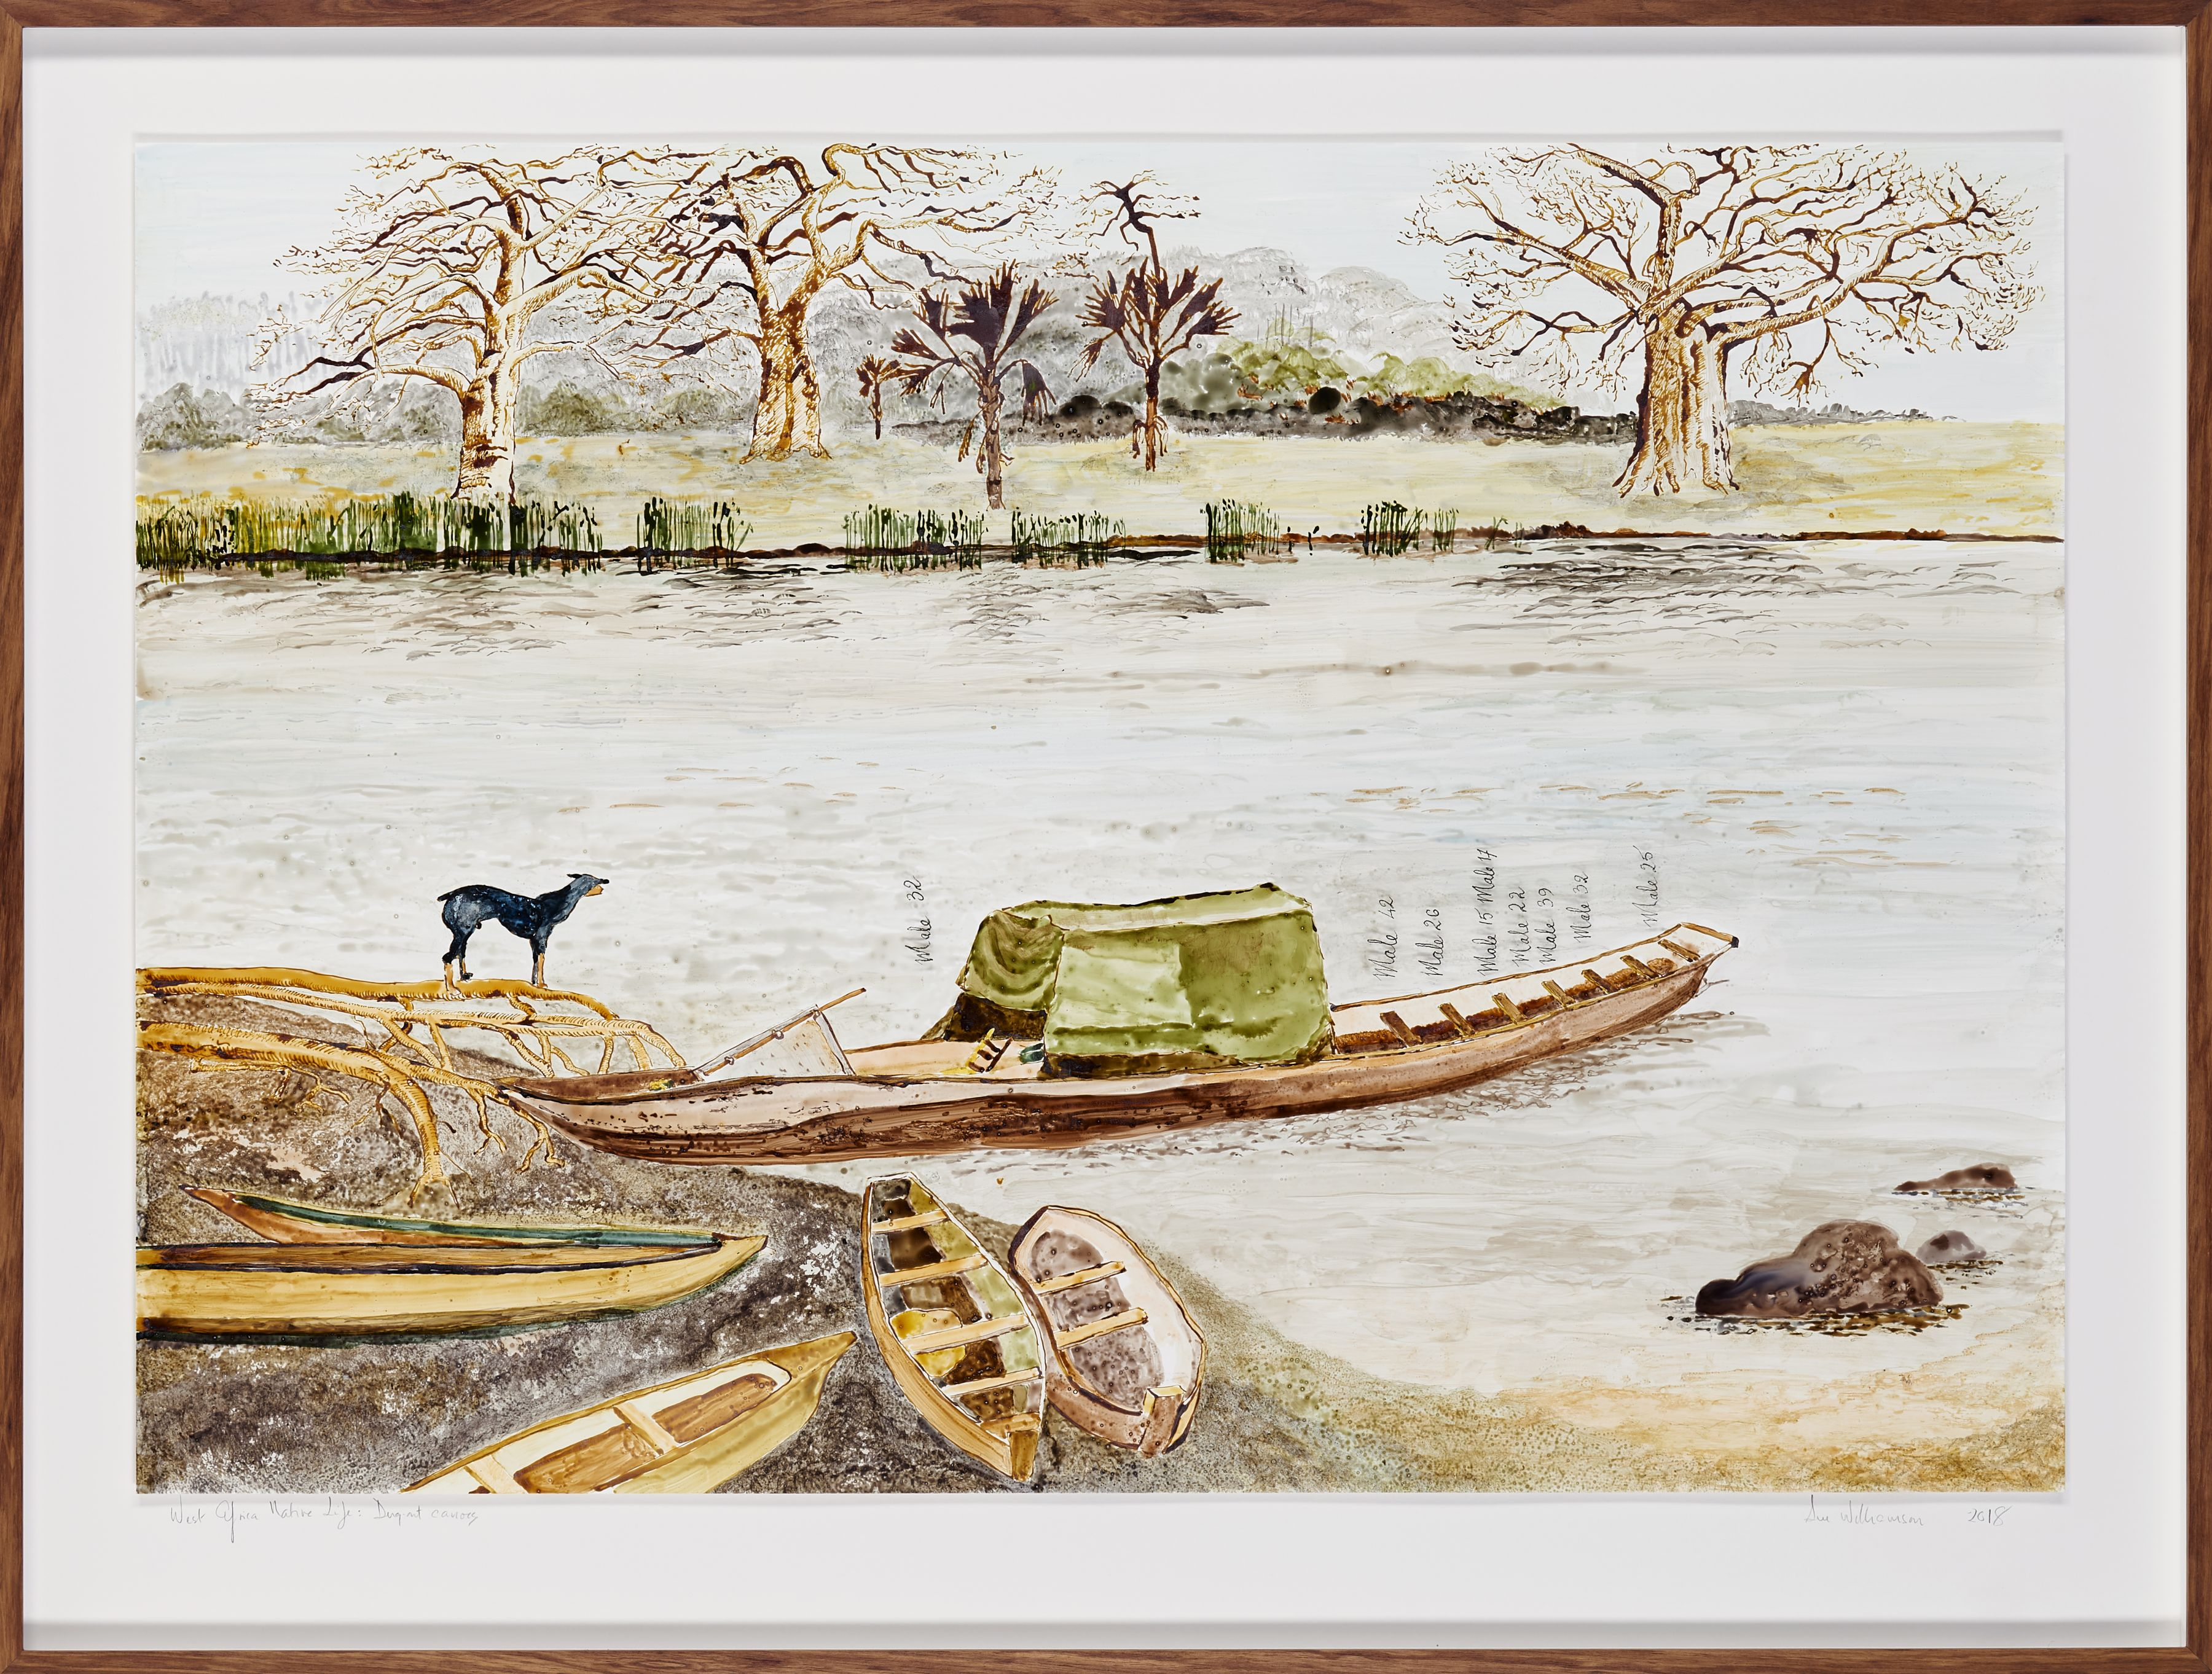 West African Native life and scenes: Dugout Canoes, artwork